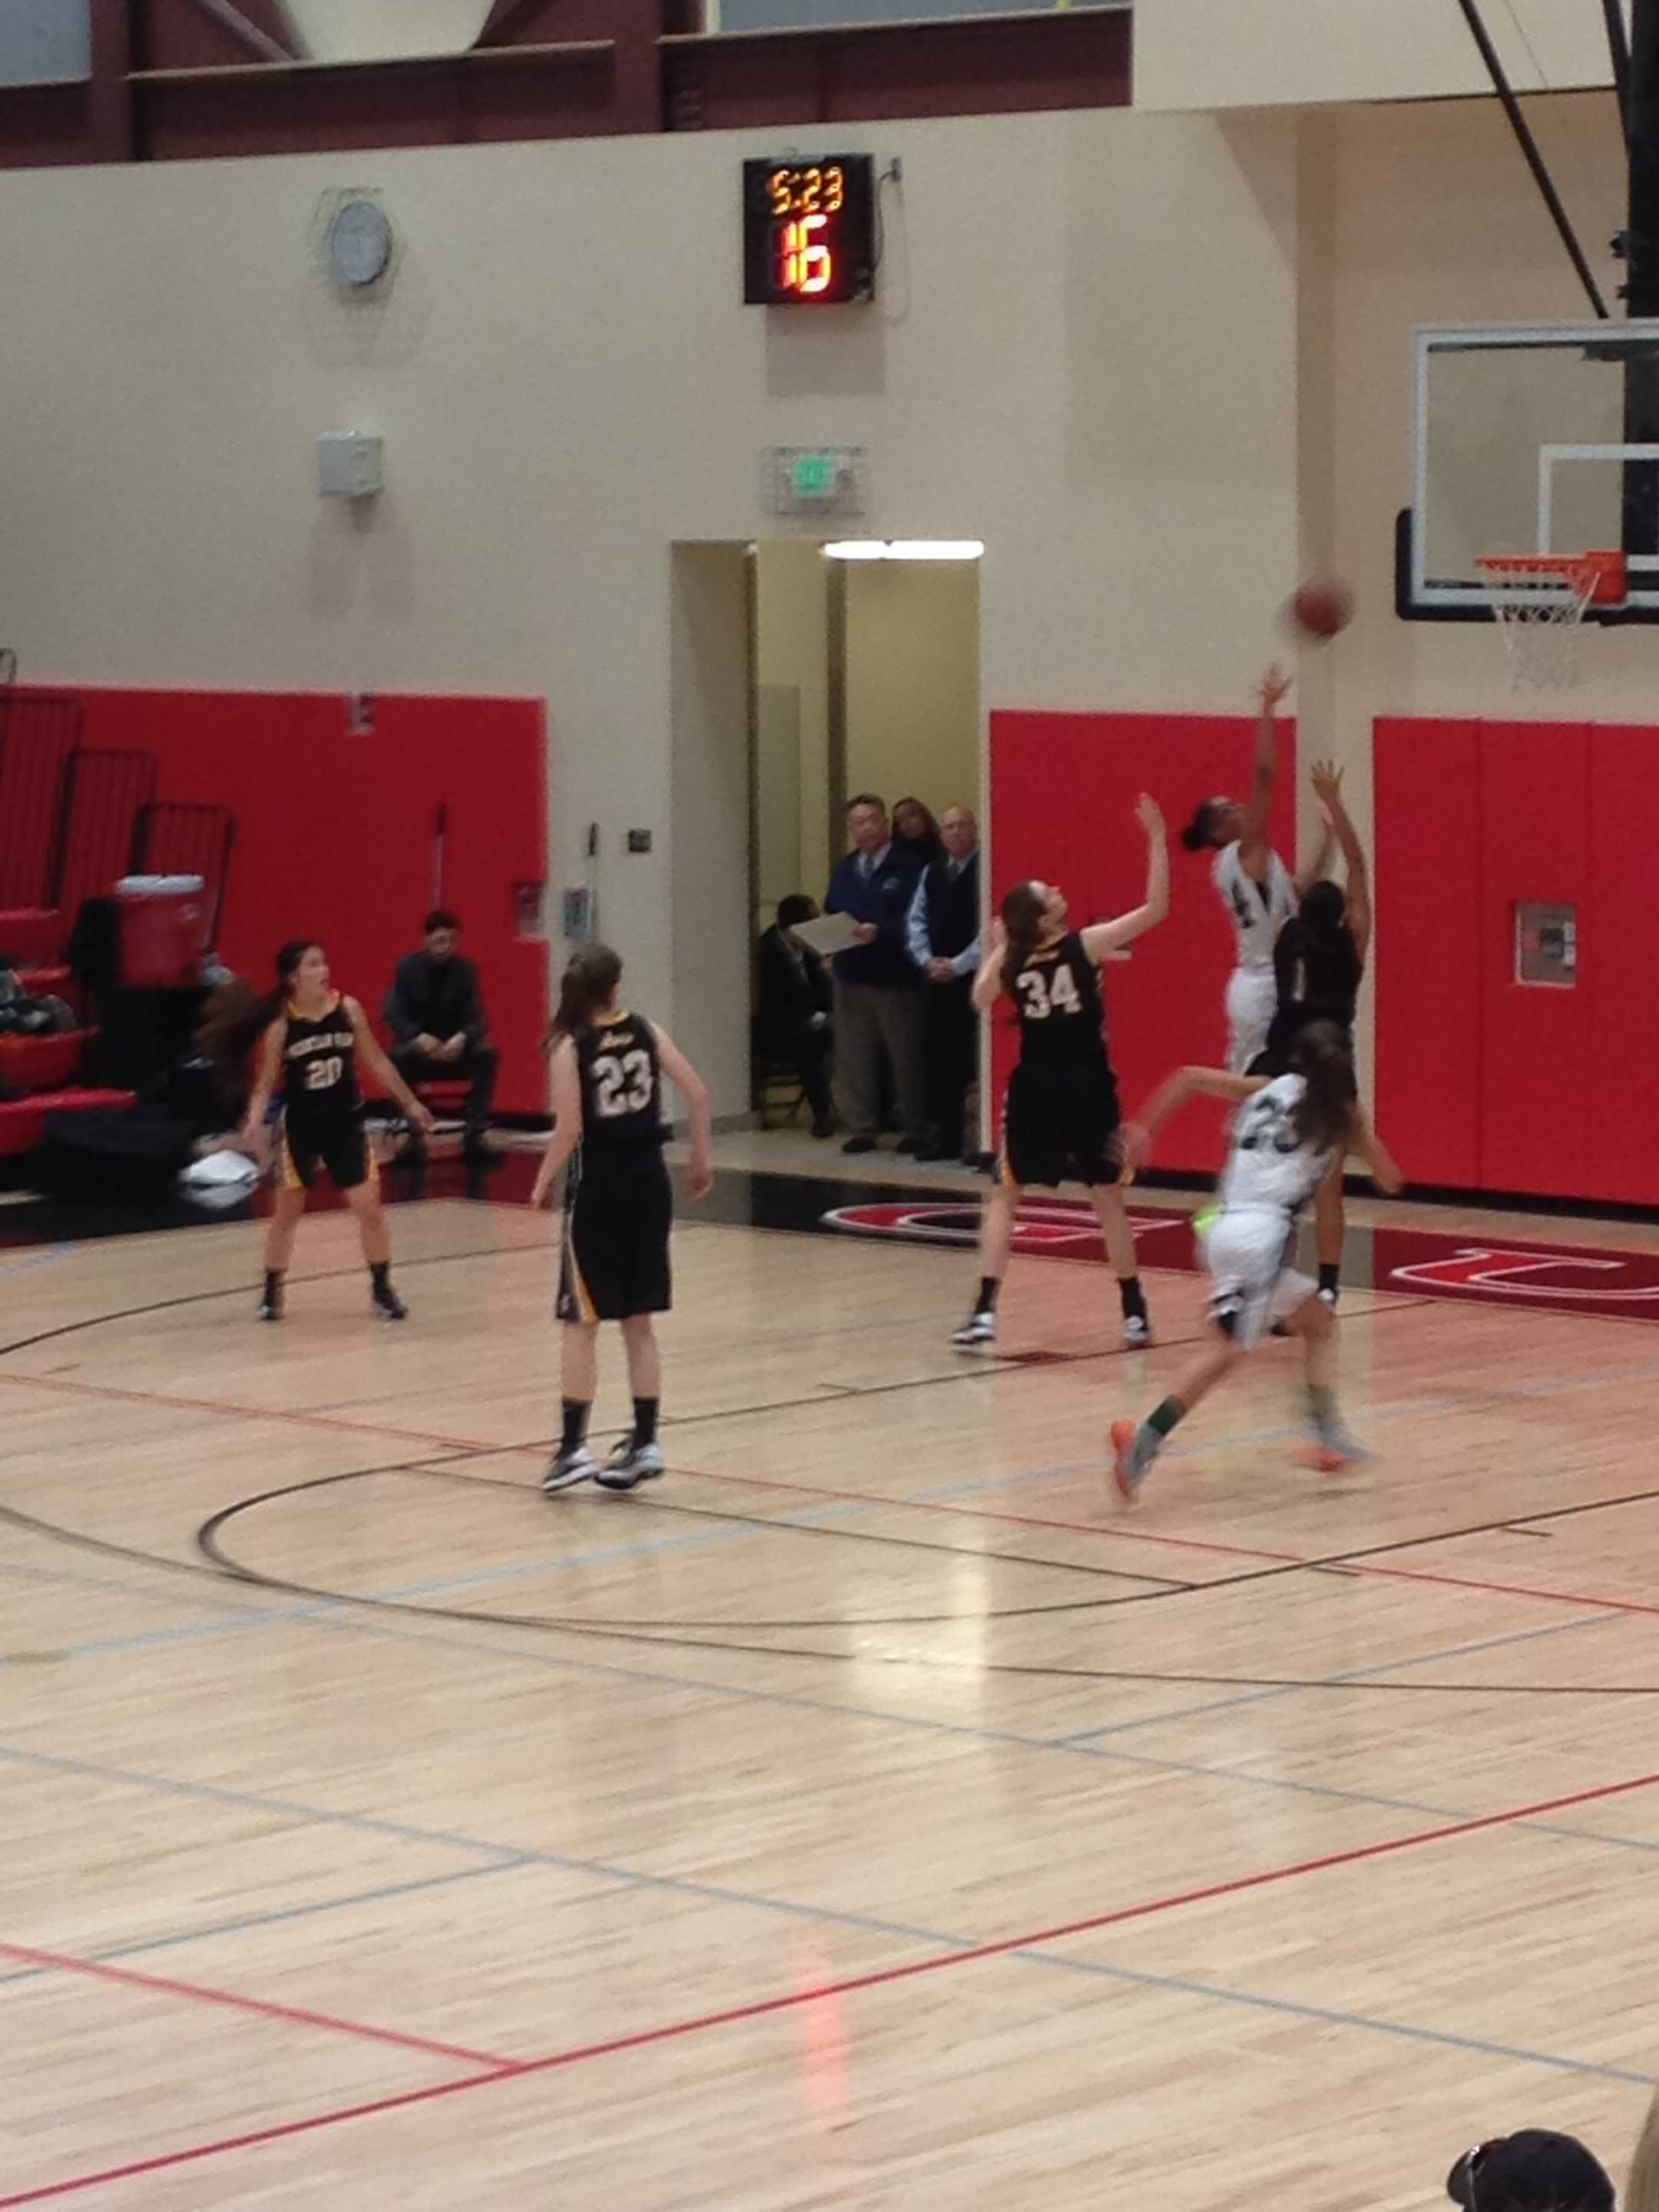 Alexis Harris goes up for a shot against two Mountain View defenders. Paly would go on to win 57-54.